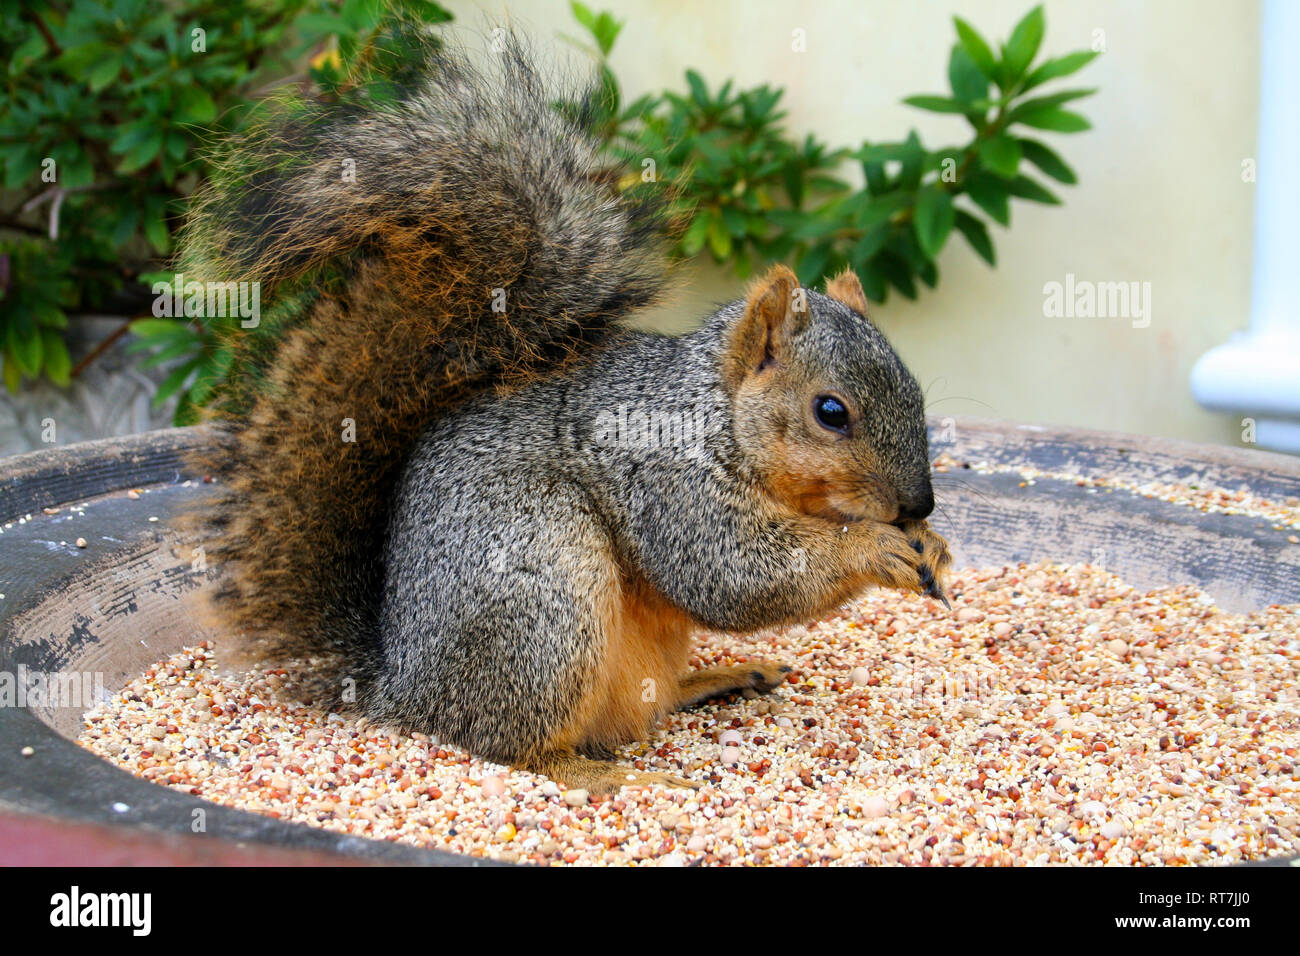 Little squirrel eating its nuts in Venice Beach, California - Stock Image